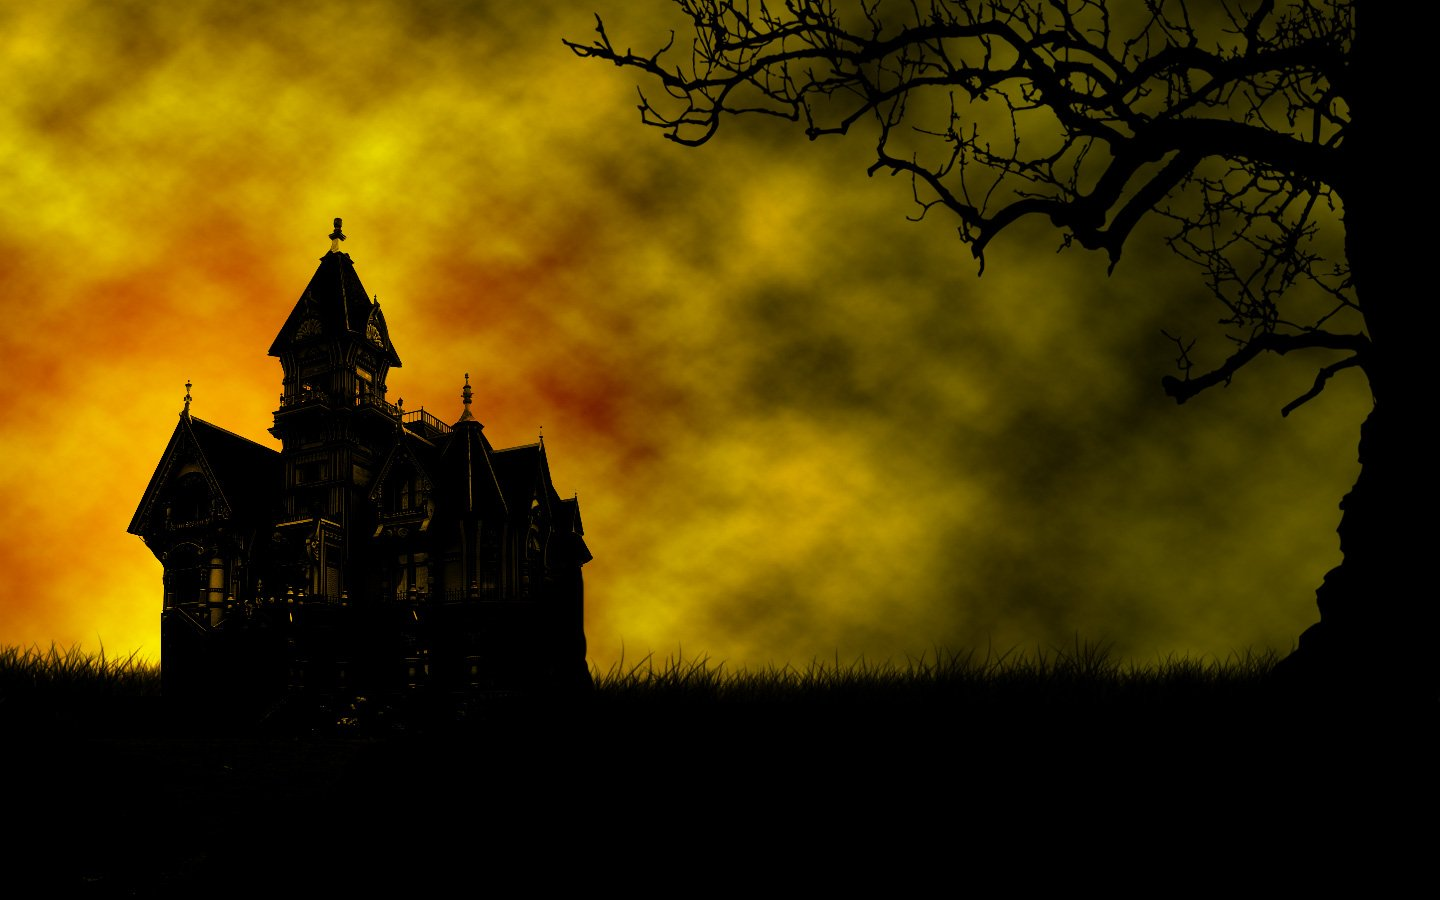 halloween backgrounds applicable to all myspace profiles layouts and 1440x900